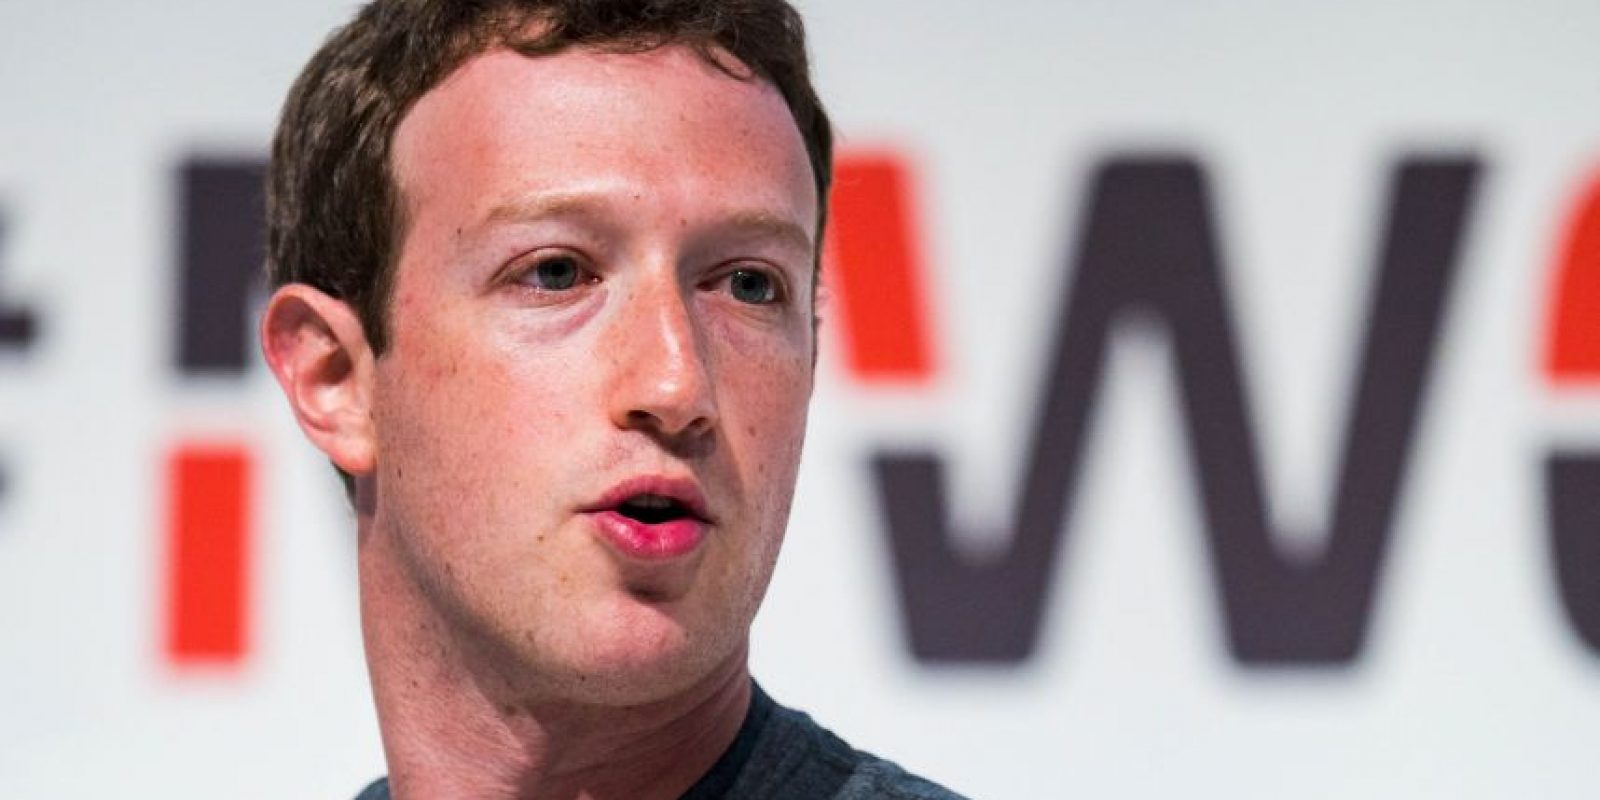 15. Mark Zuckerberg posee una fortuna de $33 mil 400 millones. Foto: Getty Images